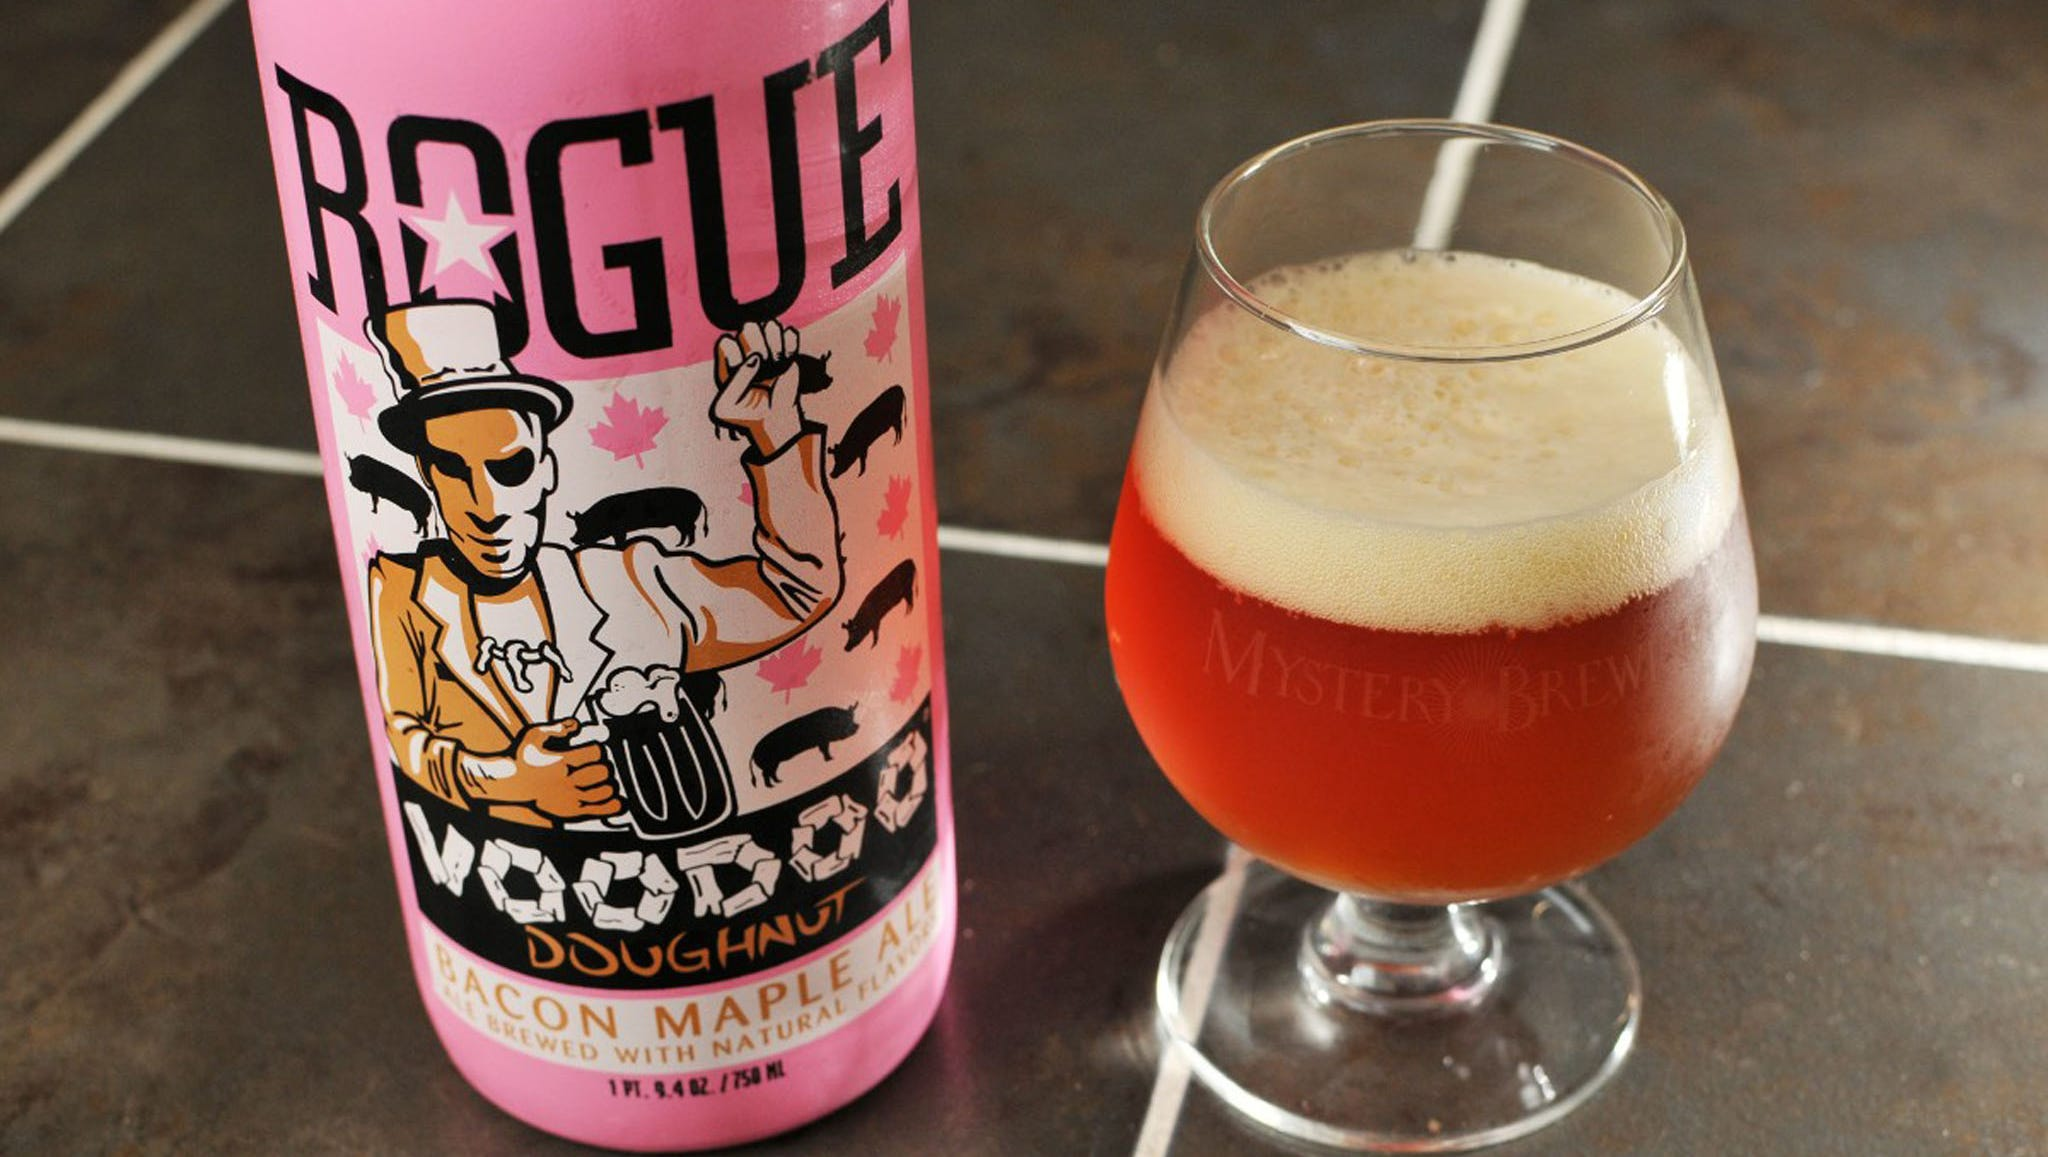 """Rogue Ales, Portland, Ore.: Rogue is one of those """"only in Portland"""" kind of breweries, and it's what makes it just so unique. Founded by two fraternity brothers and their friends, this brand shattered all expectations about what a craft brewing company should be, evident in their name and their creed: a desire and a willingness to change the status quo. This shows even in their bottles, which include tasting notes, ingredients, and food pairings directly on the labels. The company even breaks norms in its beer styles for its brews, like the Chipotle Ale, the Single Malt Ale, and perhaps the most talked about Rogue brew, the VooDoo Chocolate, Peanut Butter, and Banana Ale."""